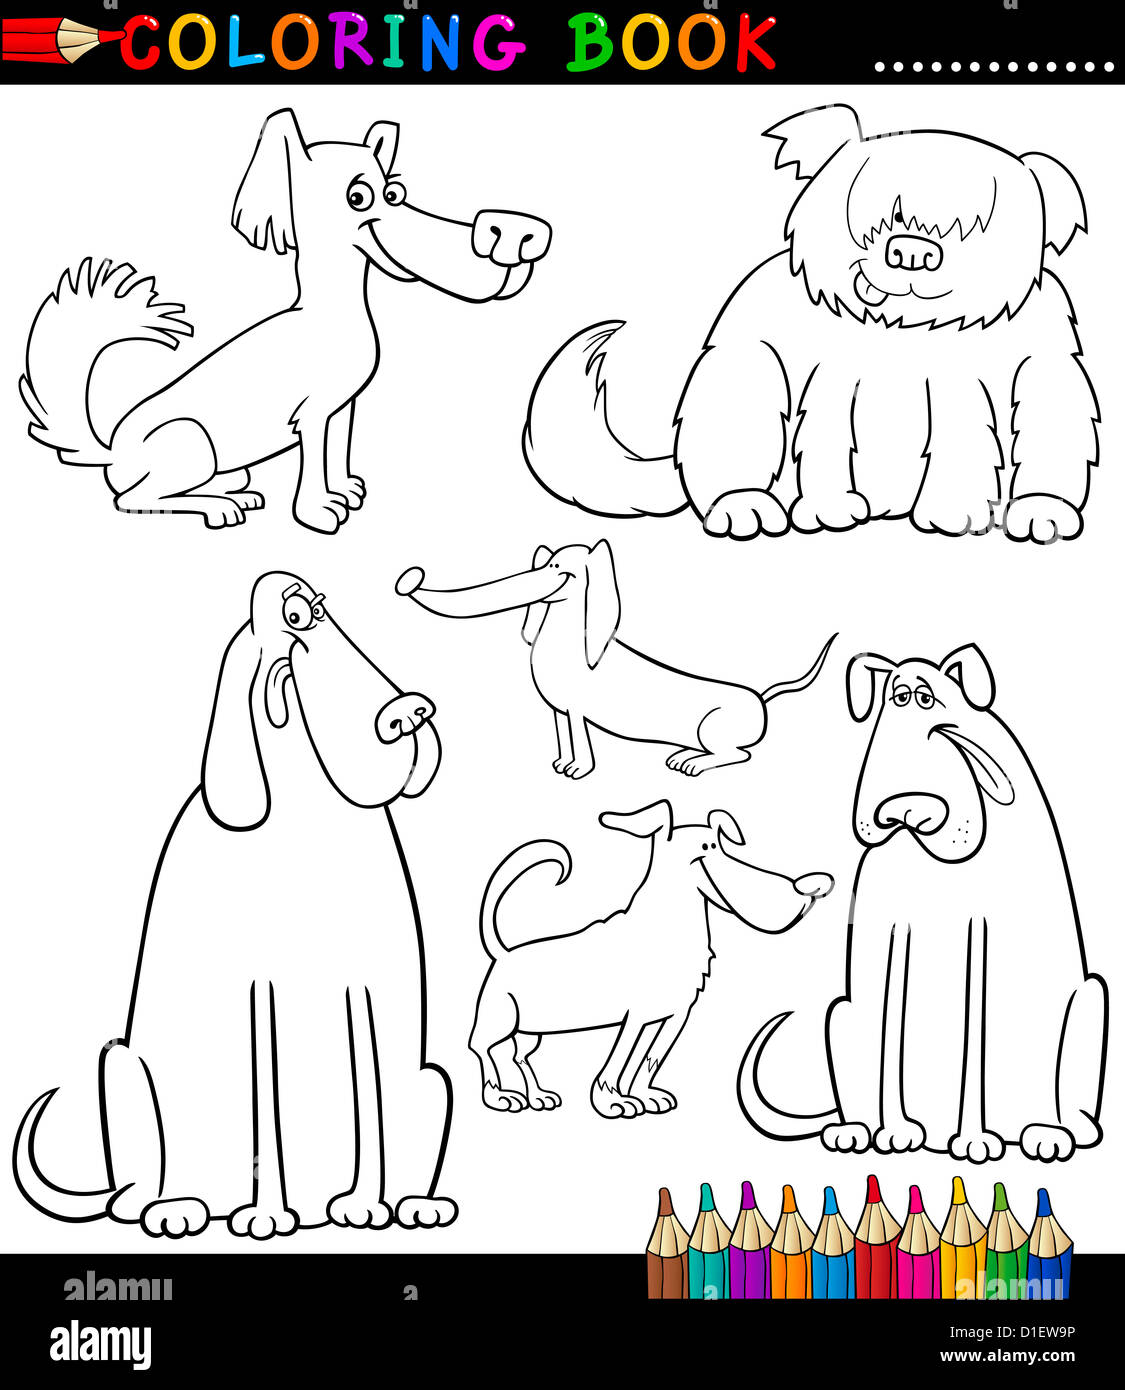 Sheepdog Dog Coloring Book Stockfotos Sheepdog Dog Coloring Book